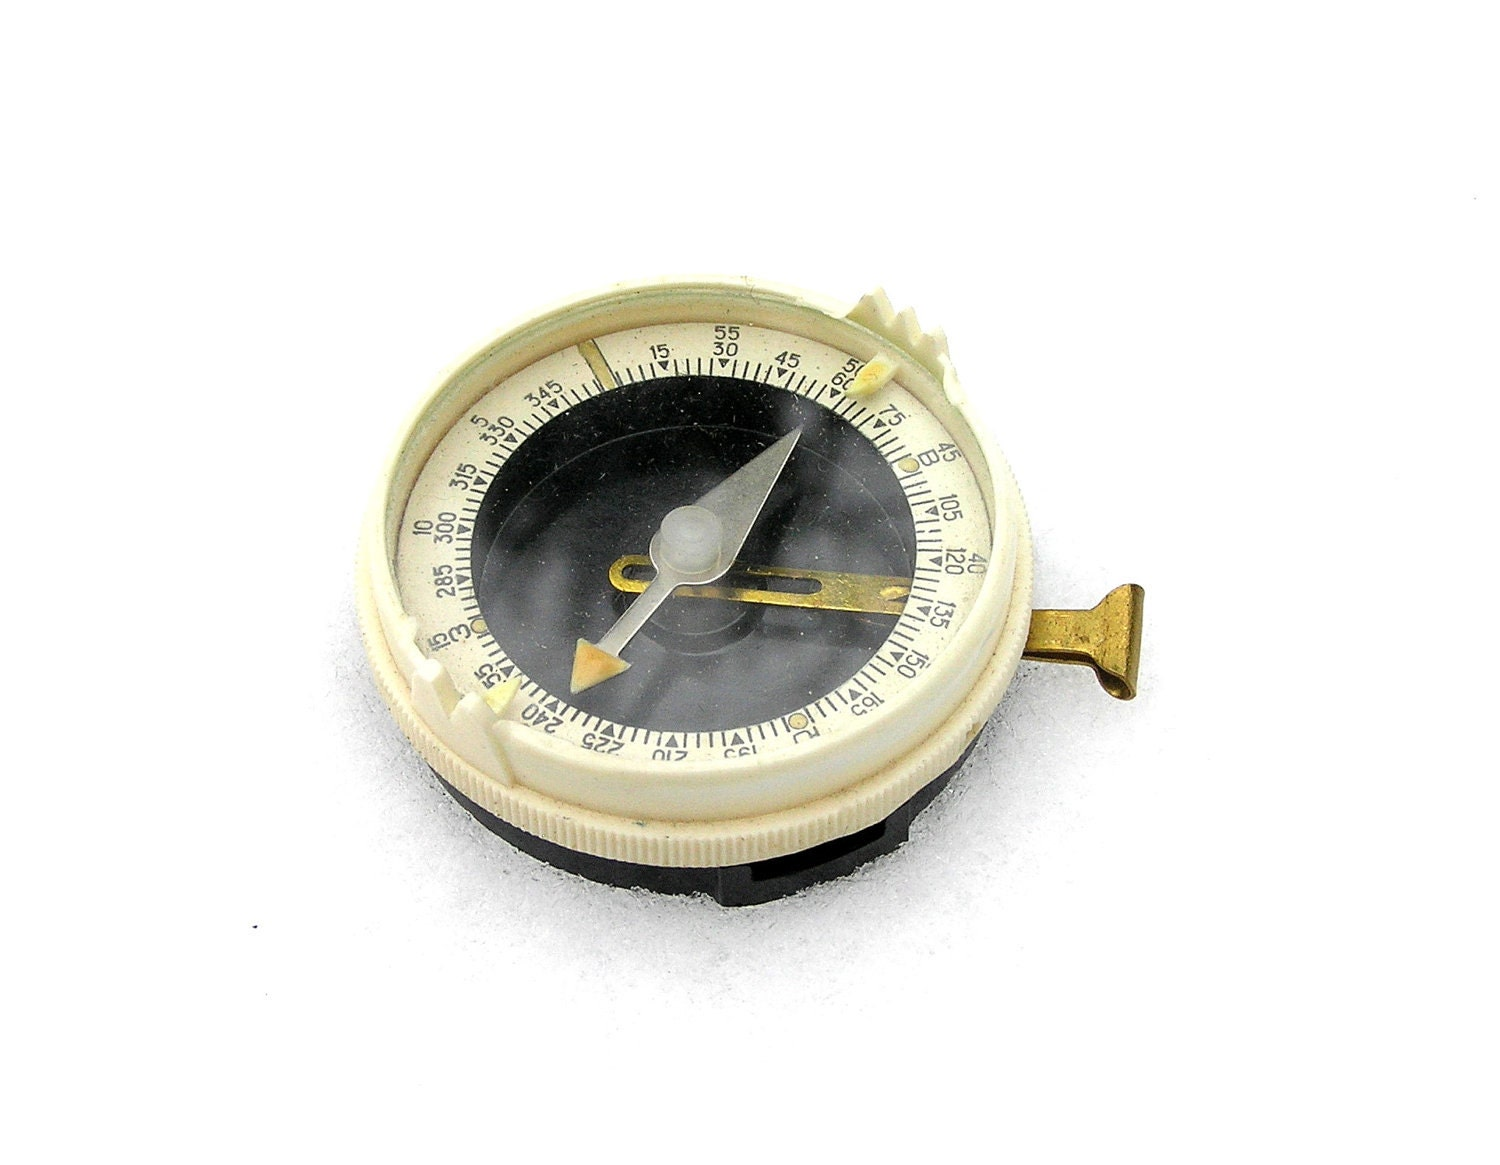 Vintage compass collectibles black and white 1970s - SoYesterdaySoCool